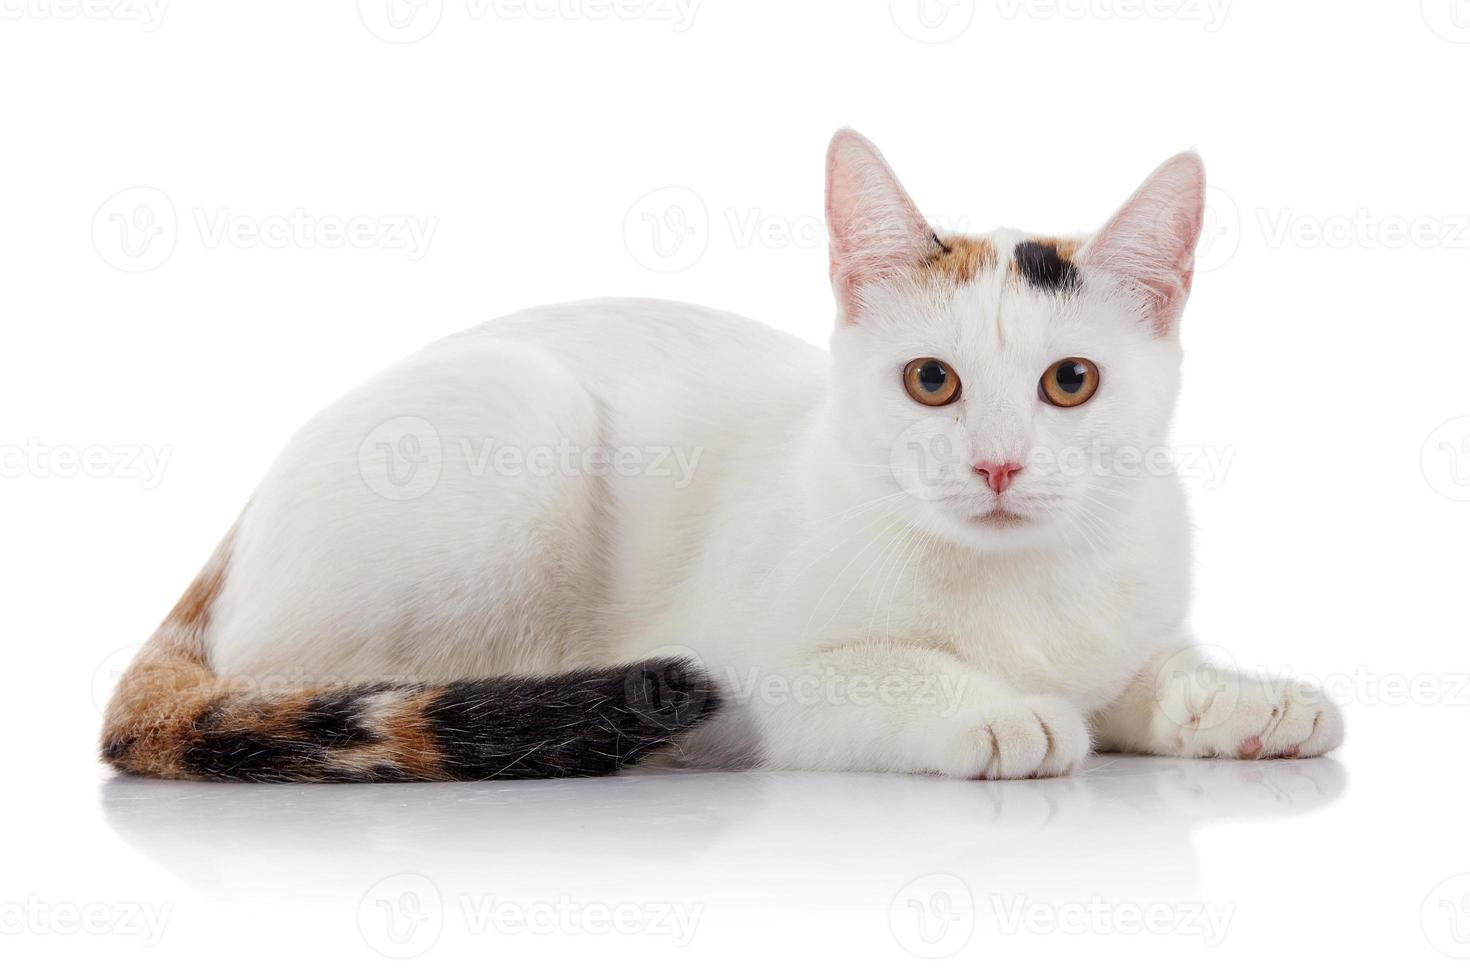 White domestic cat with a multi-colored striped tail photo